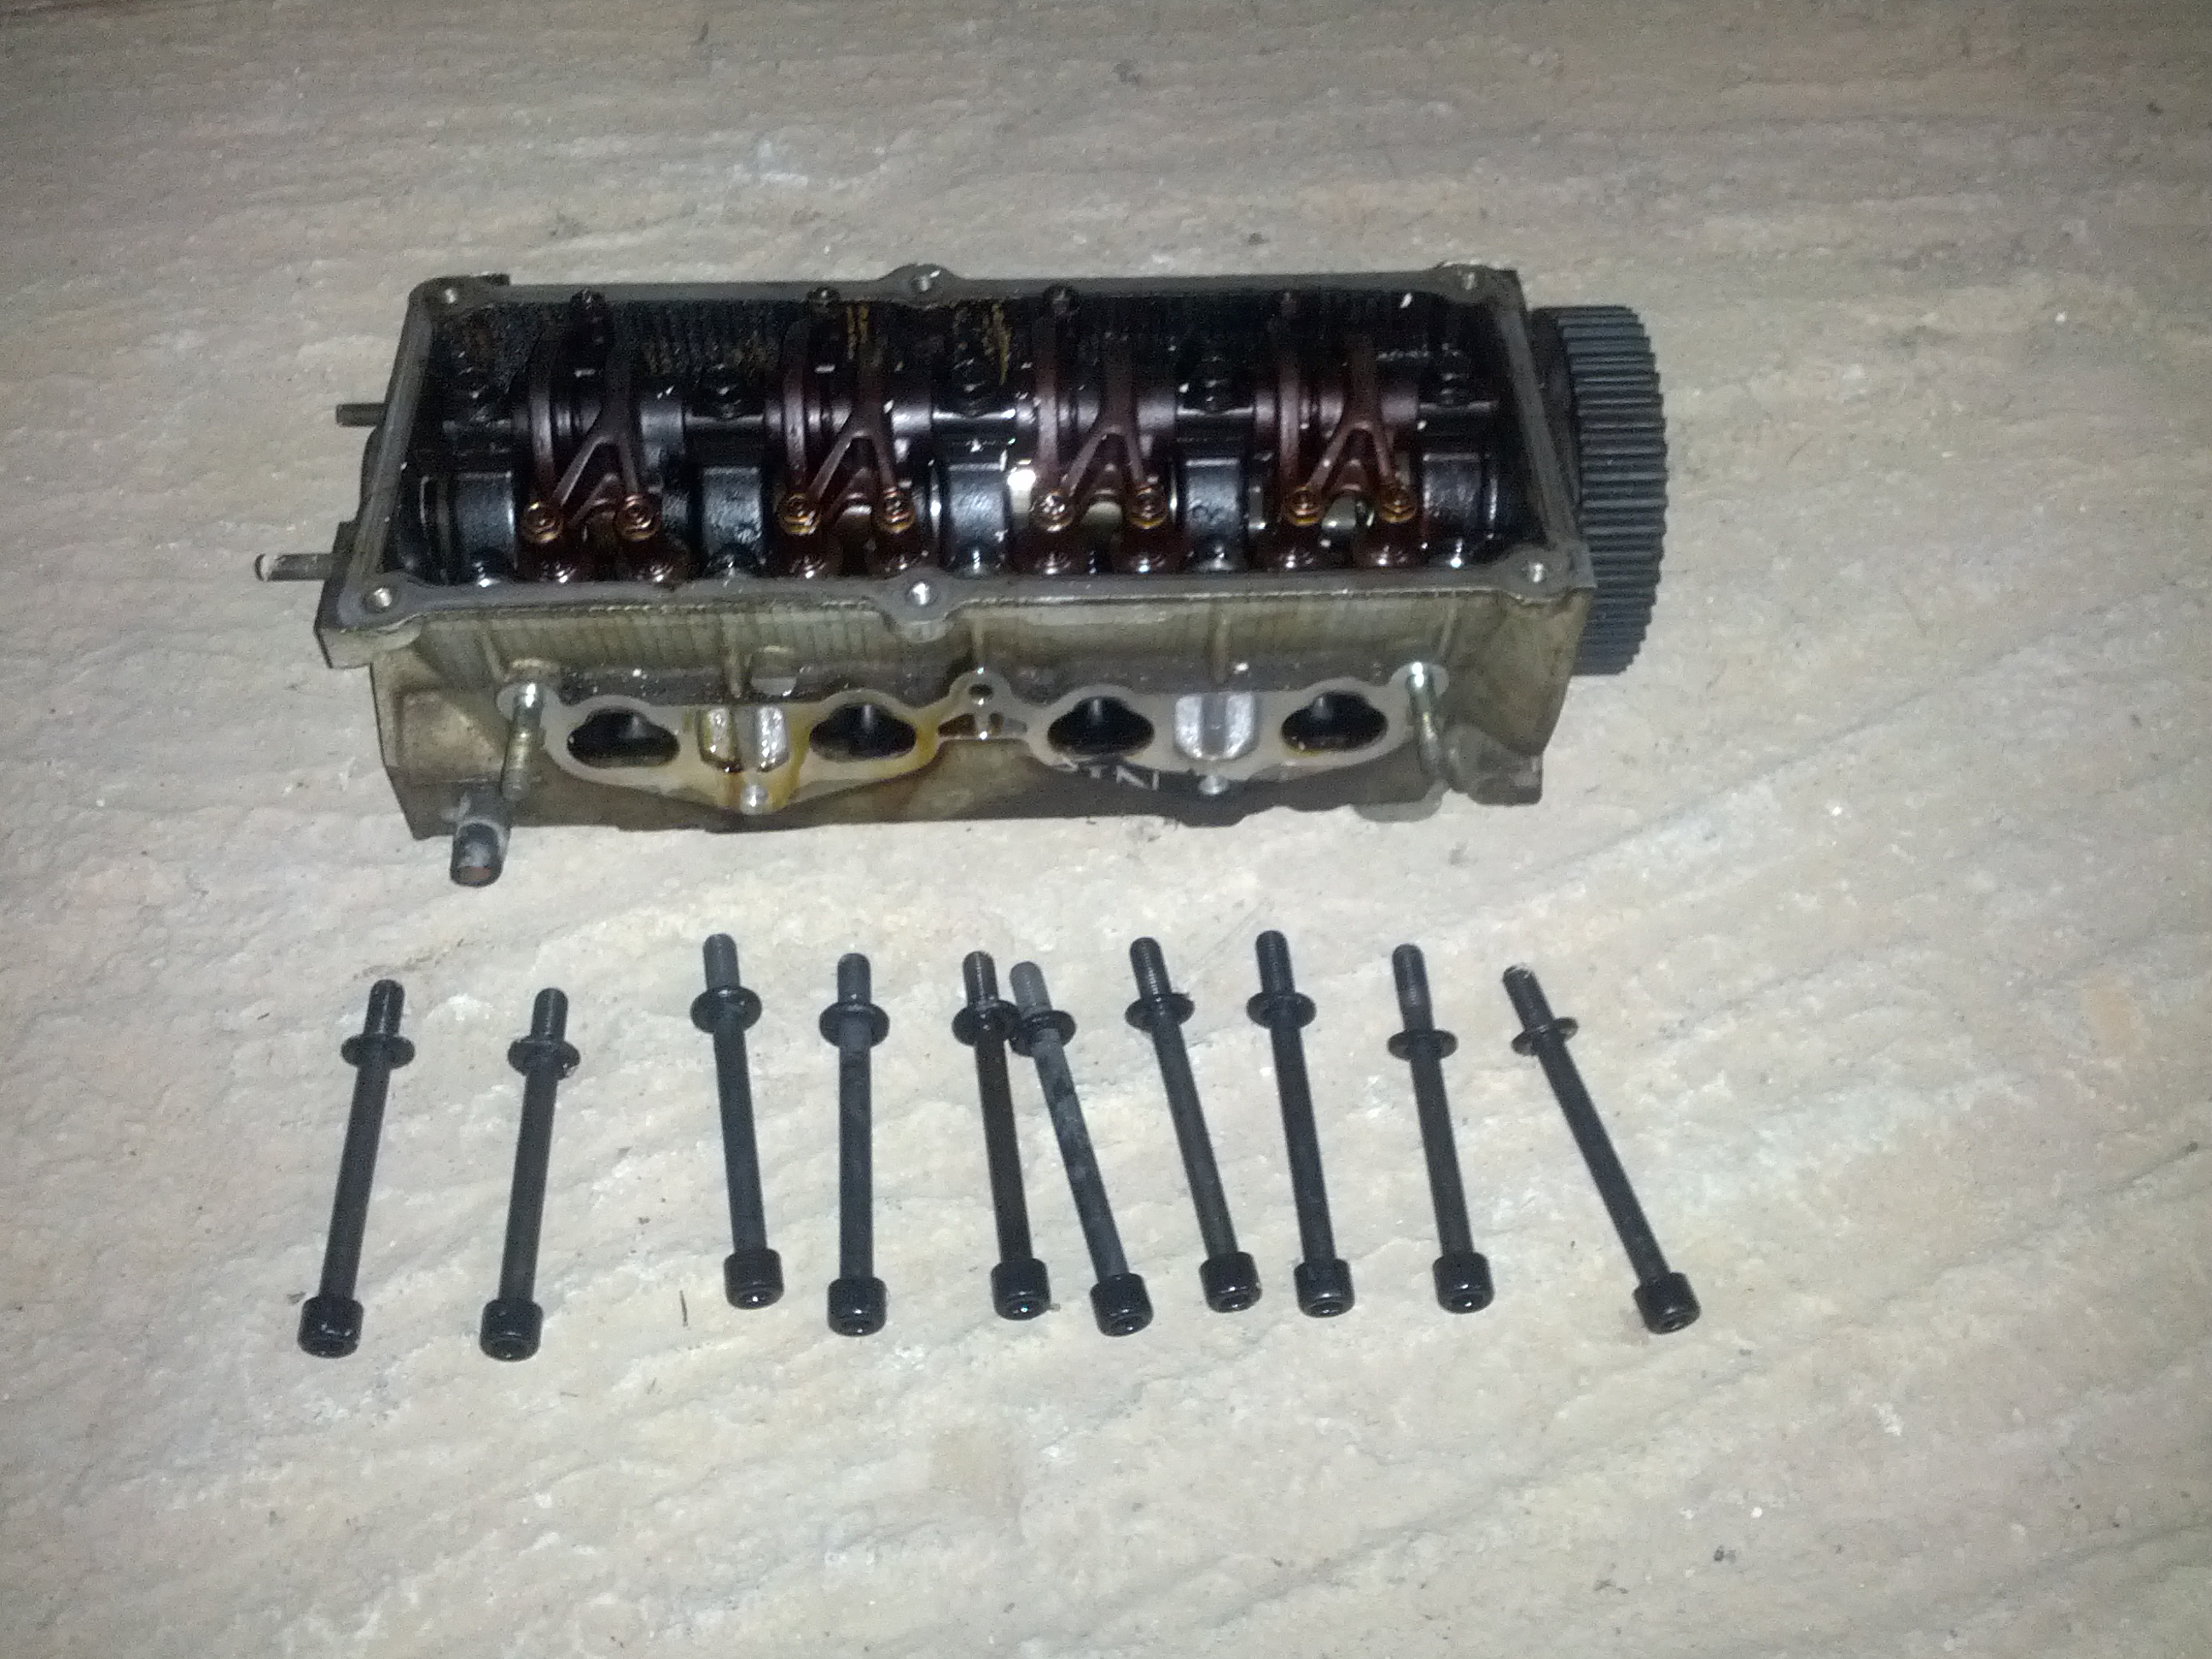 09-cylinder head with bolts